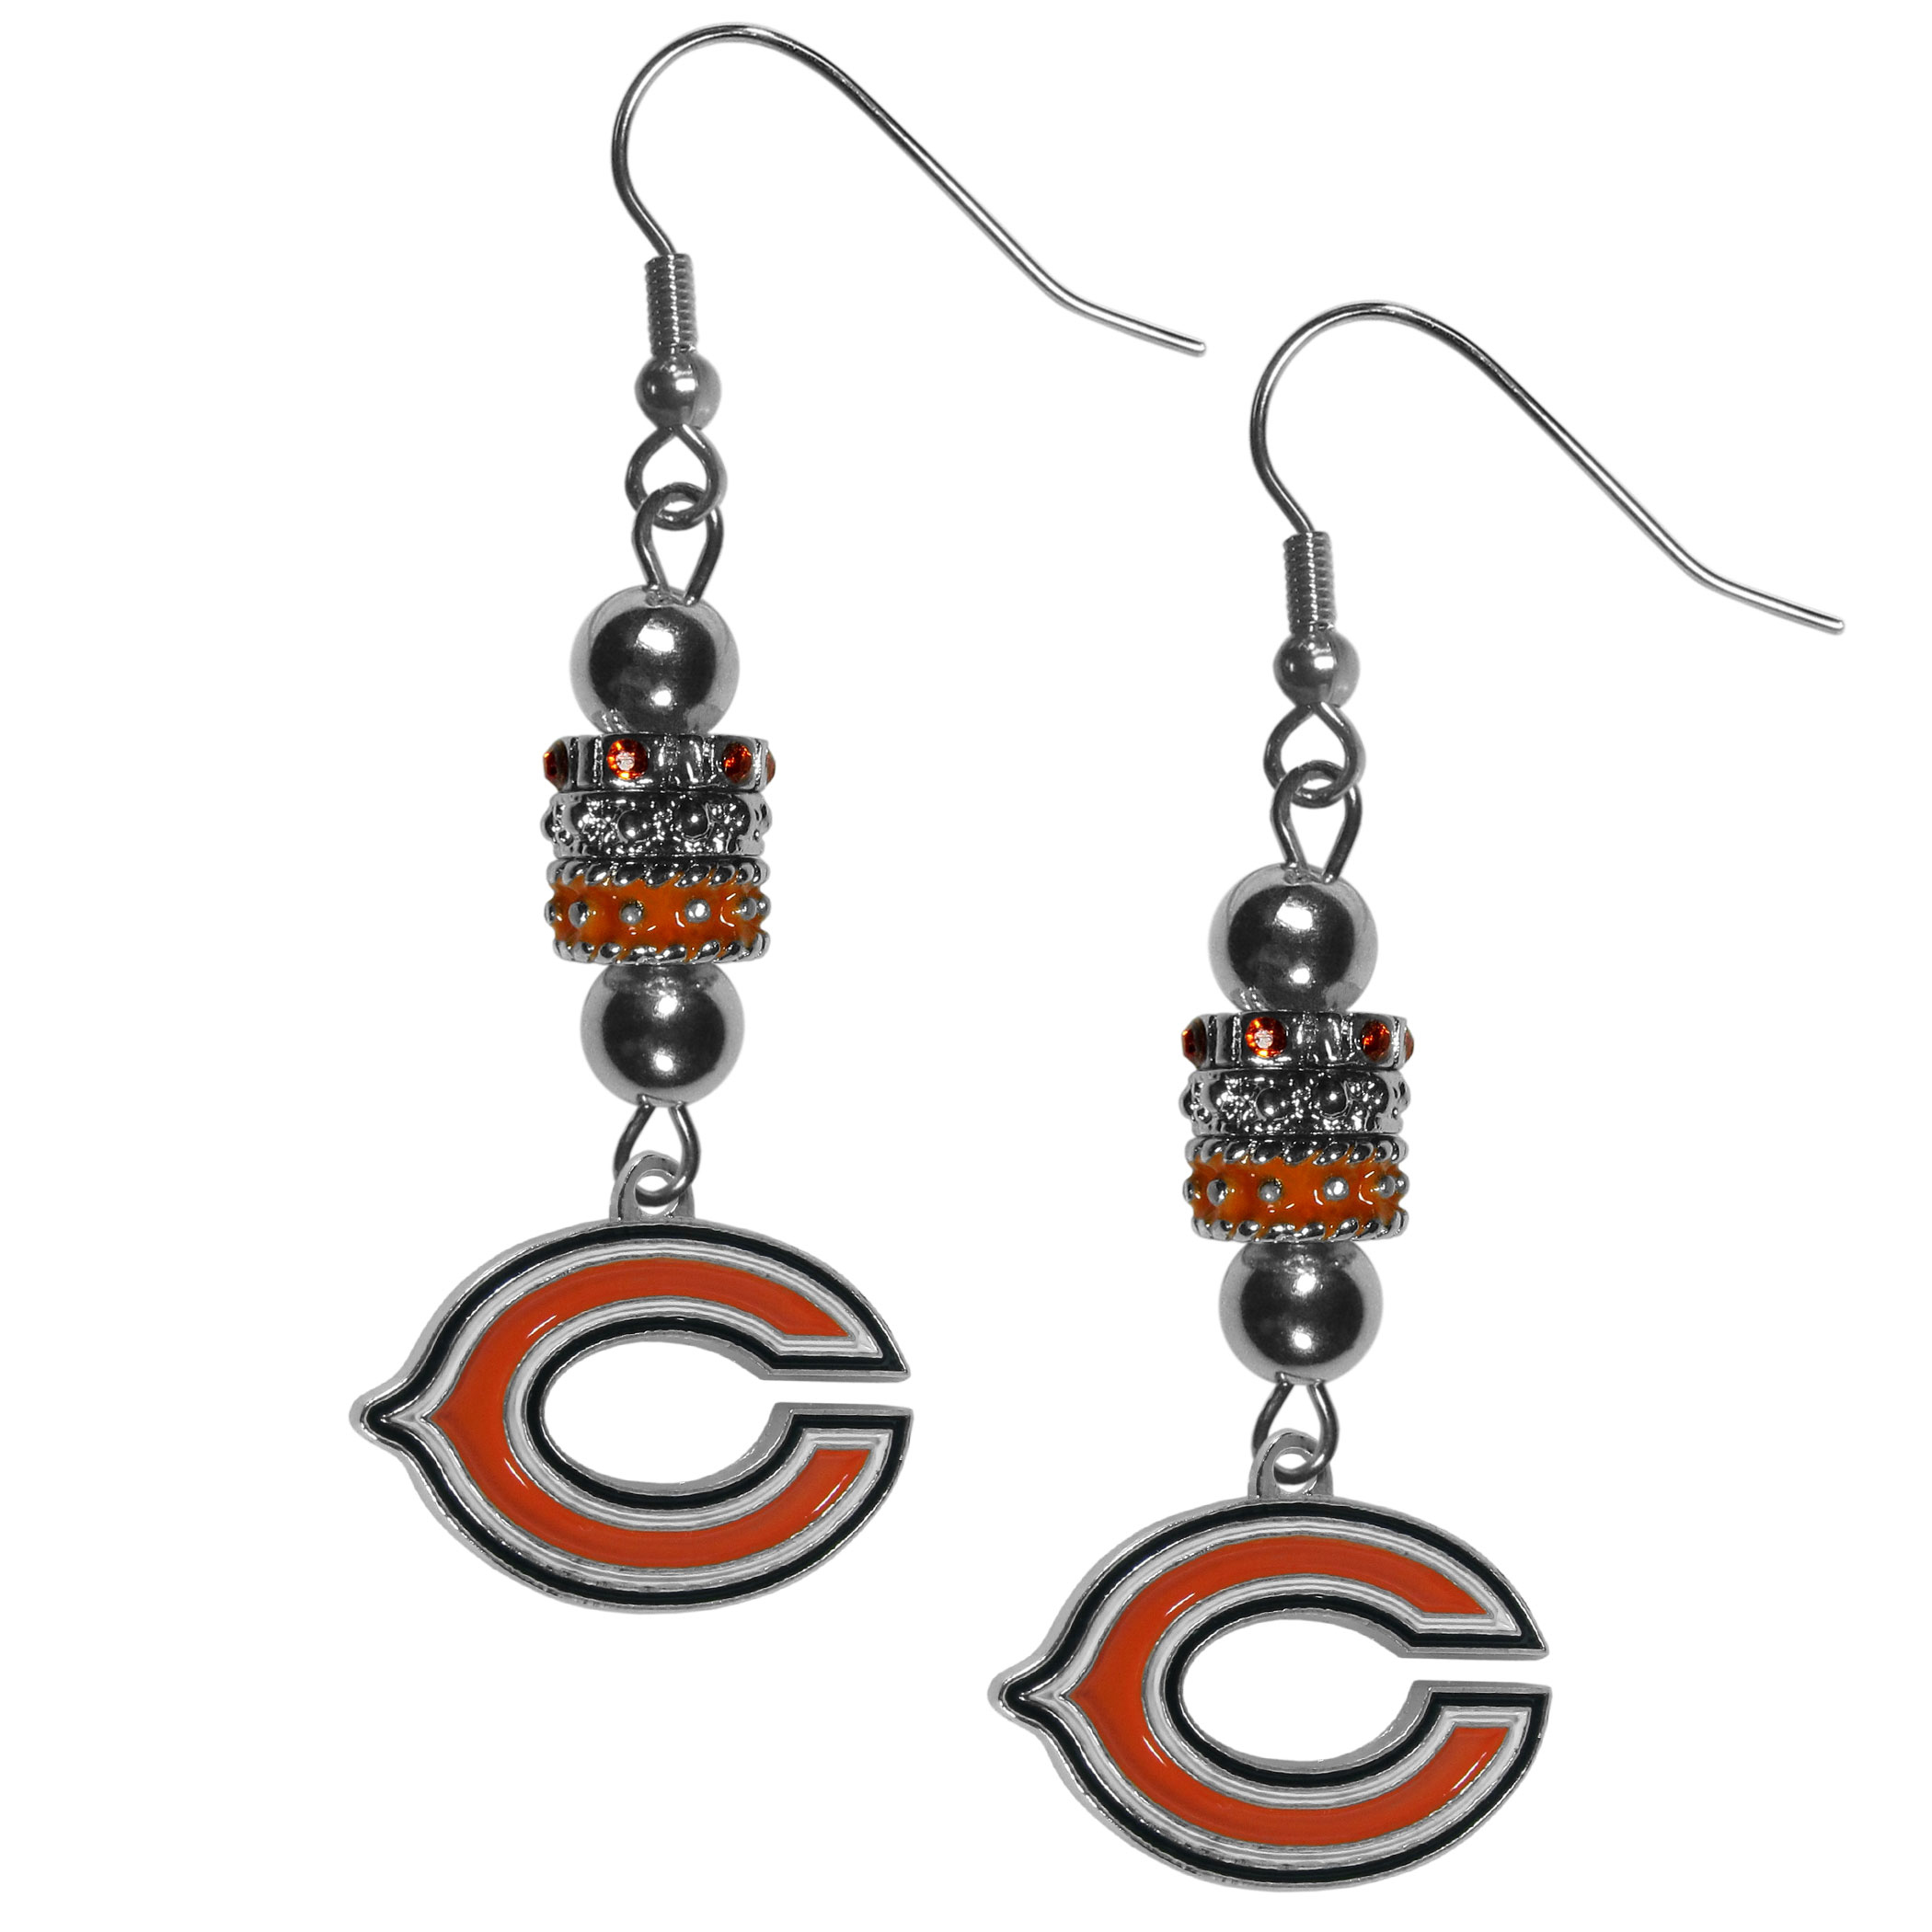 Chicago Bears Euro Bead Earrings - These beautiful euro style earrings feature 3 euro beads and a detailed Chicago Bears charm on hypoallergenic fishhook posts.